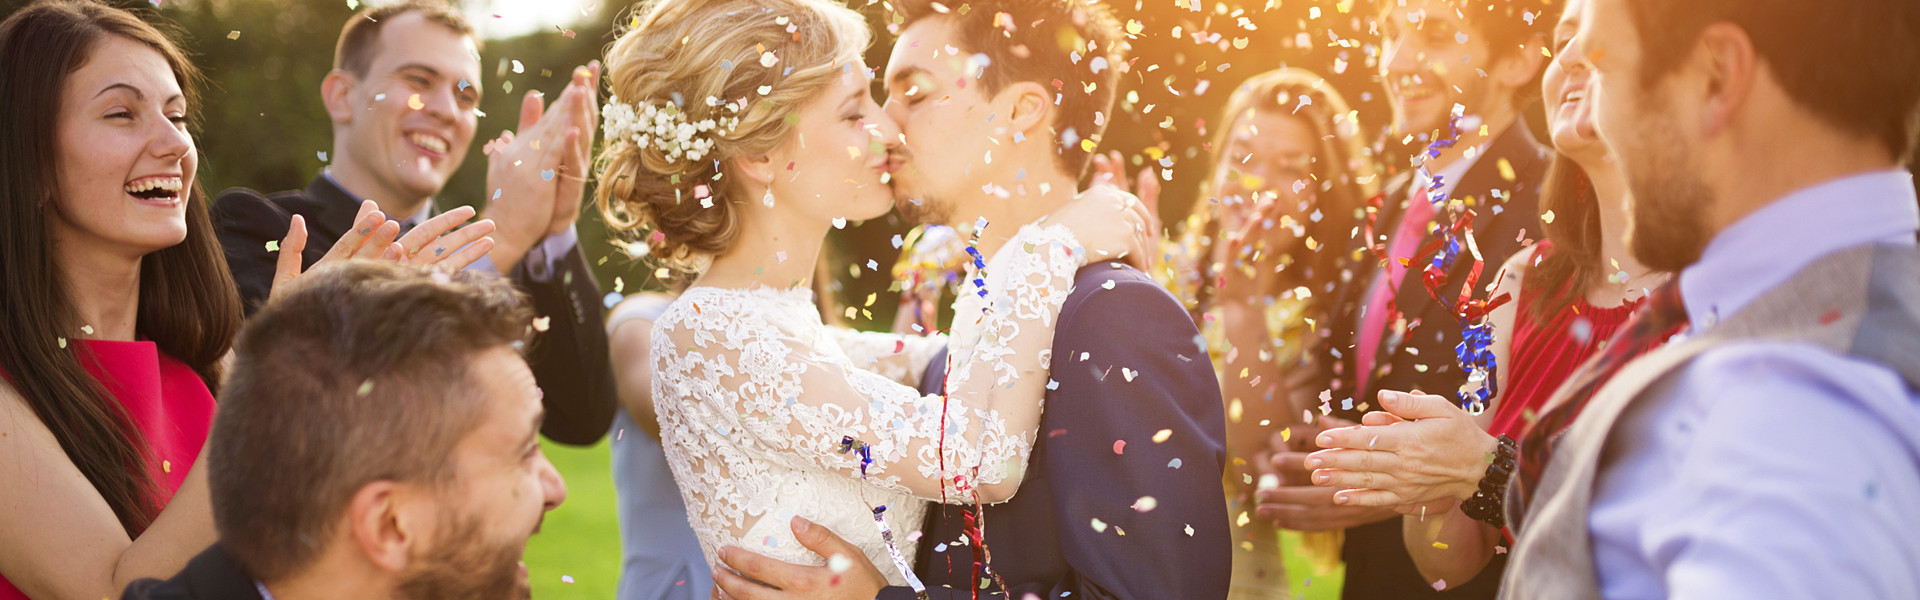 All Inclusive Wedding Packages In Las Vegas | Happy Couple